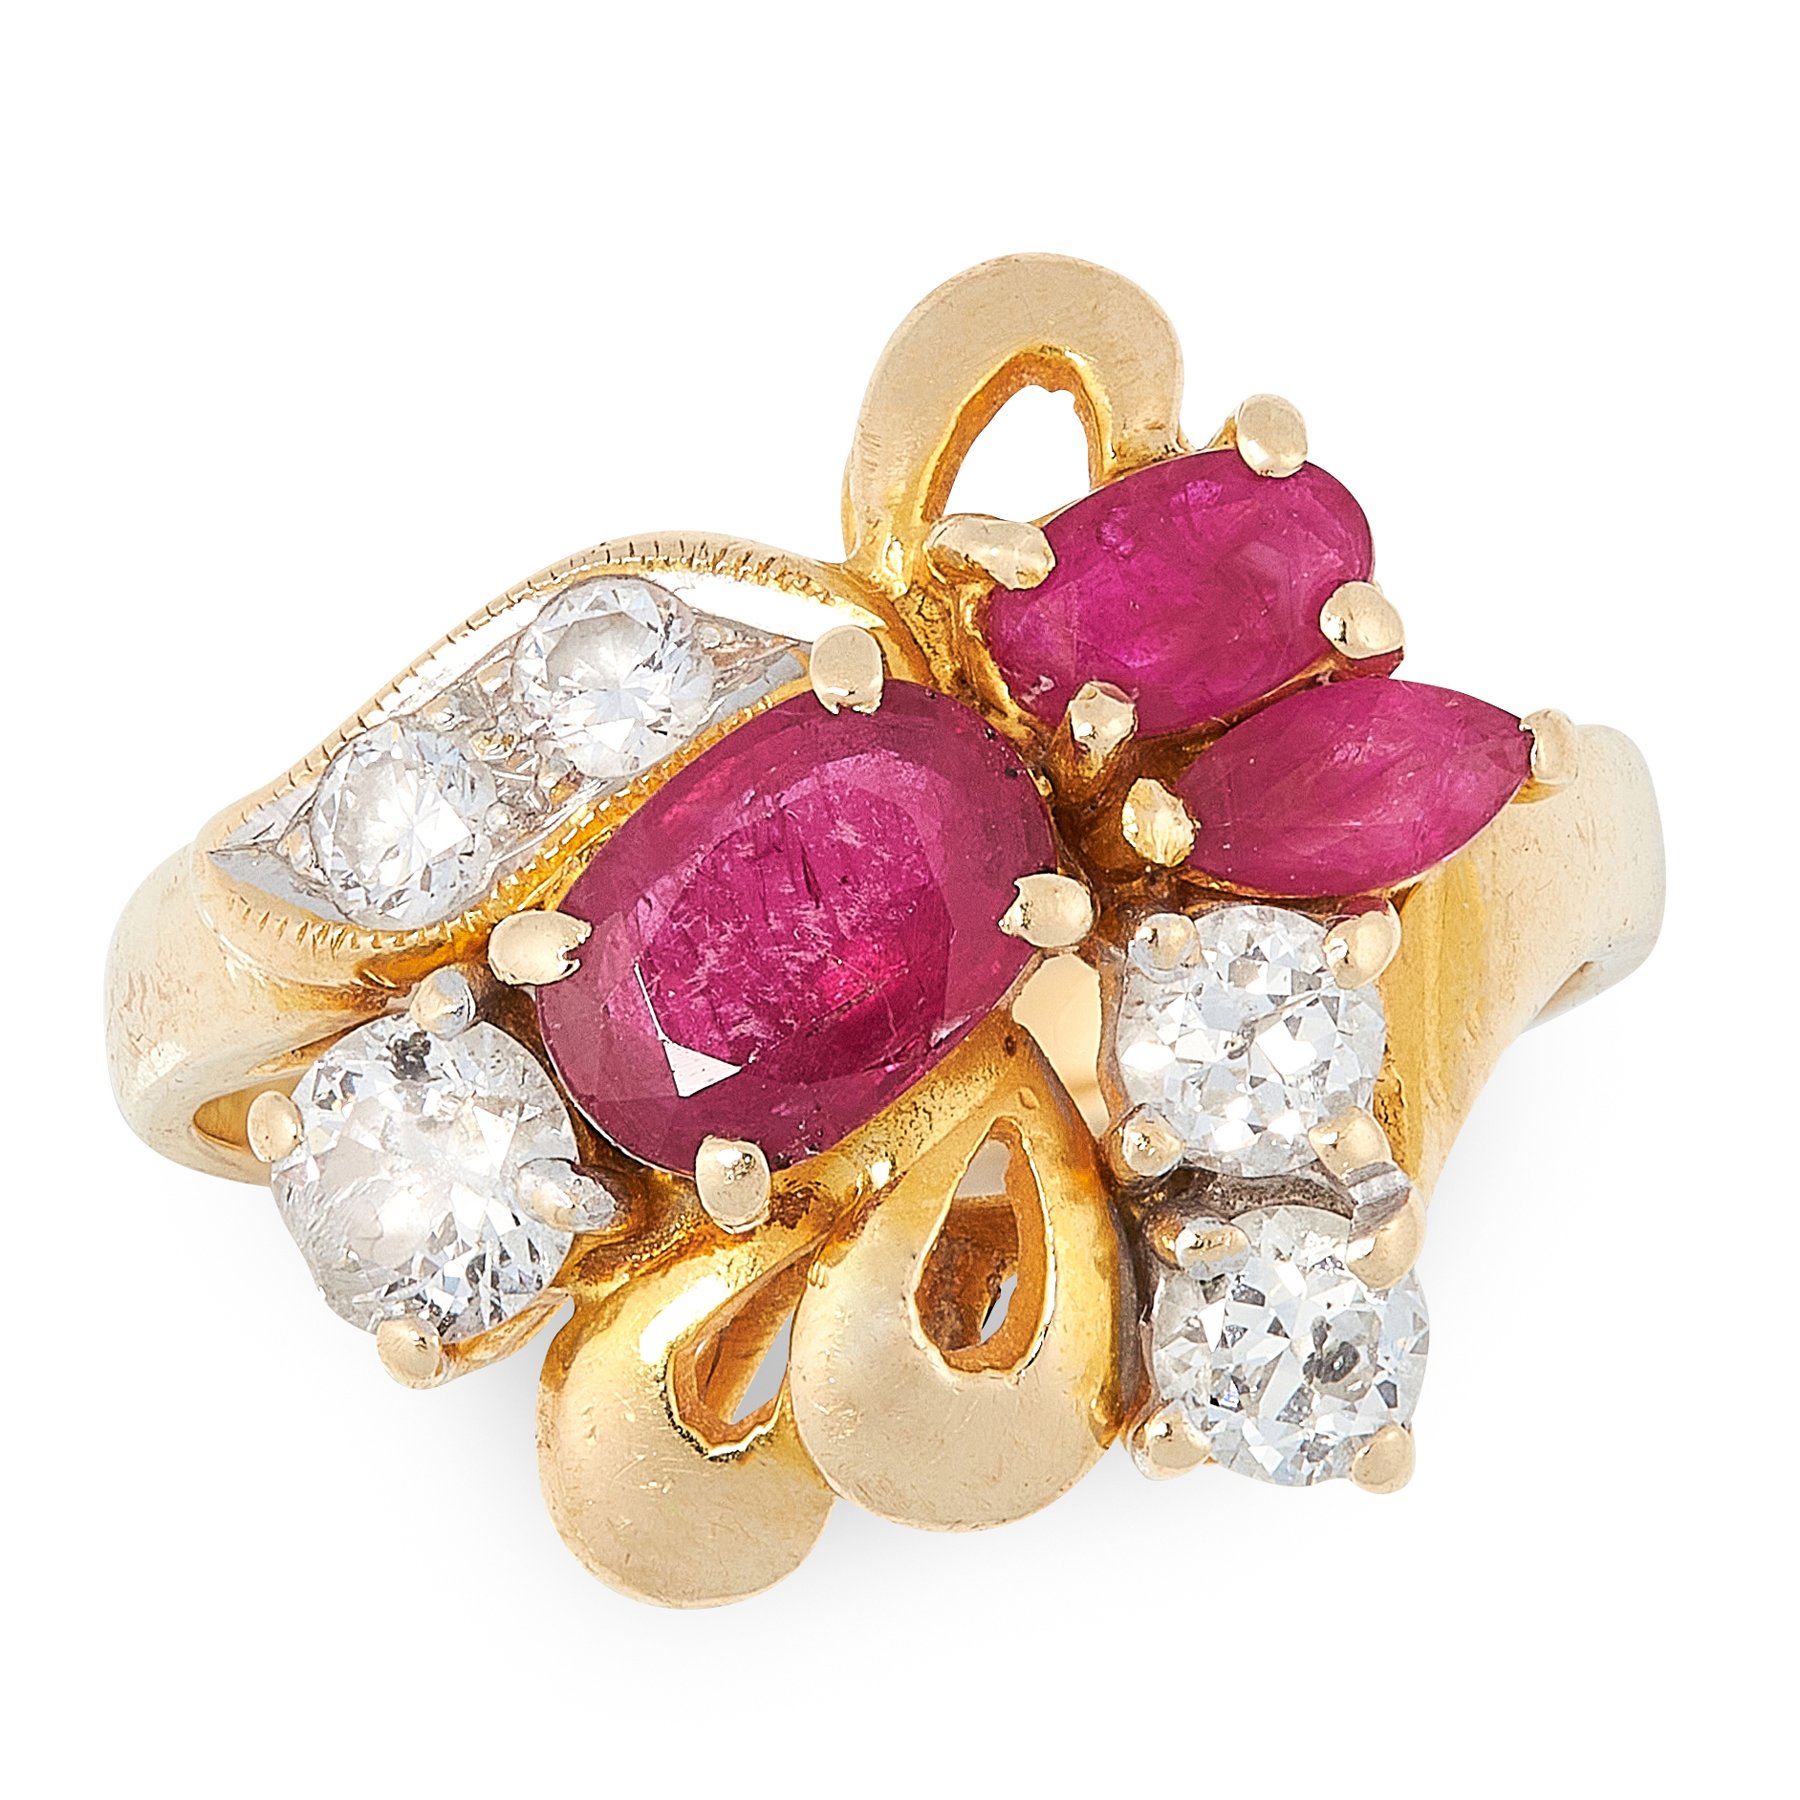 A RUBY AND DIAMOND DRESS RING in 18ct yellow gold, designed as a ribbon and bow motif, set with oval